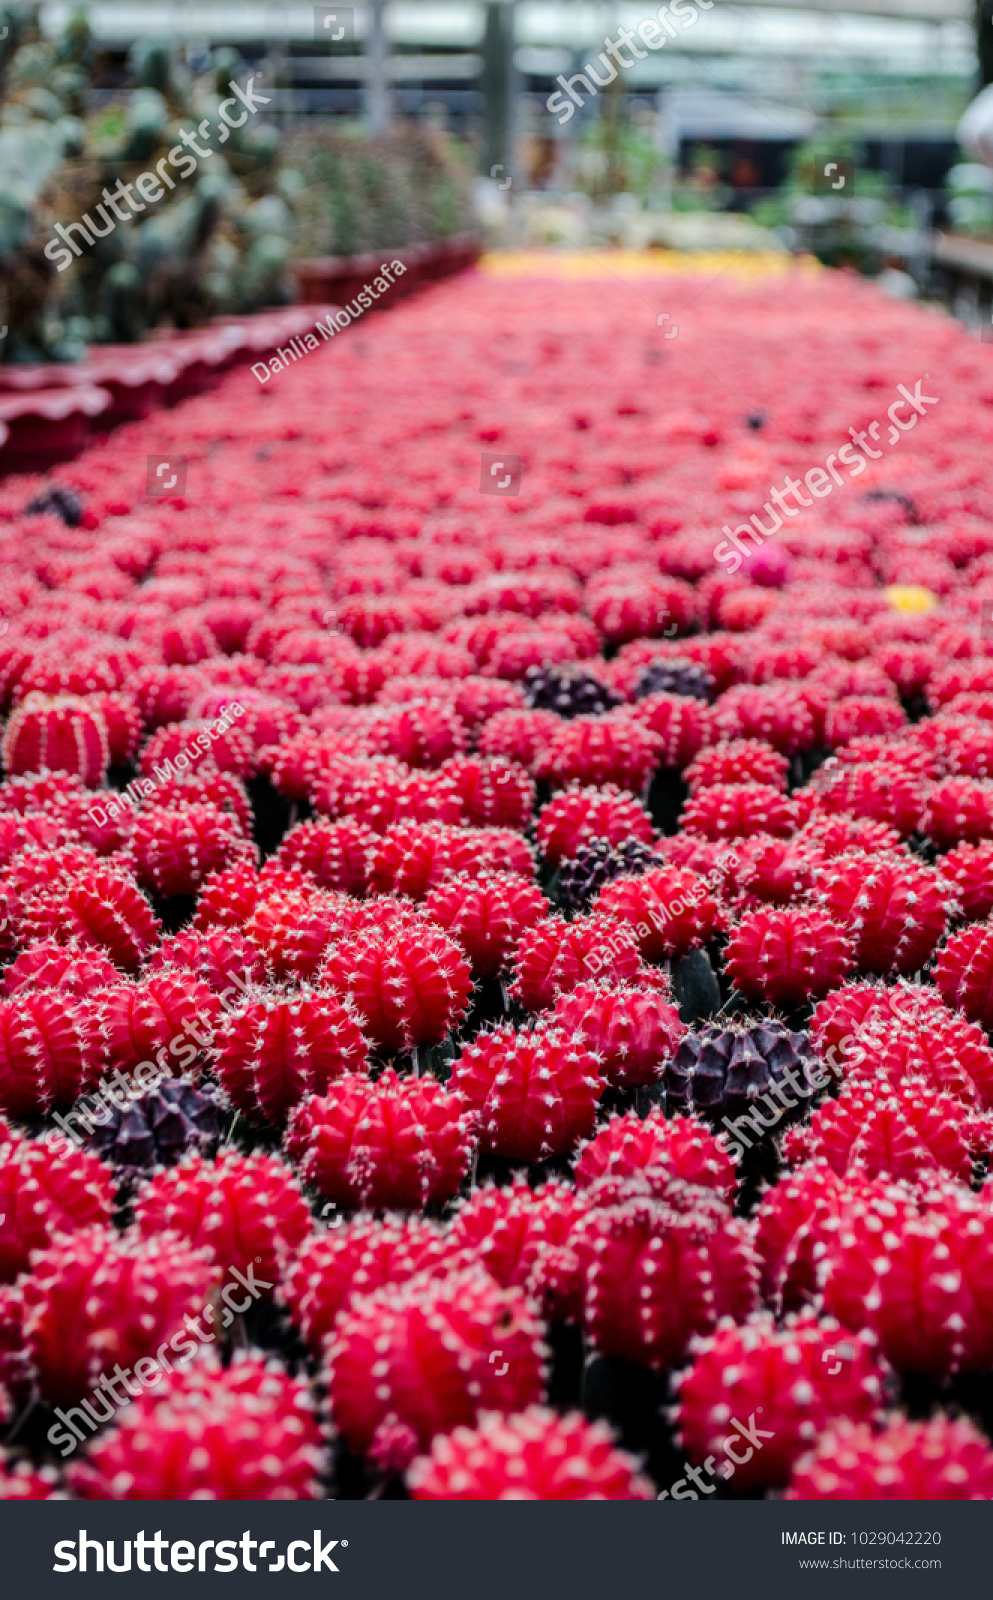 Many small cactus in different shapes between different colors red id 1029042220 mightylinksfo